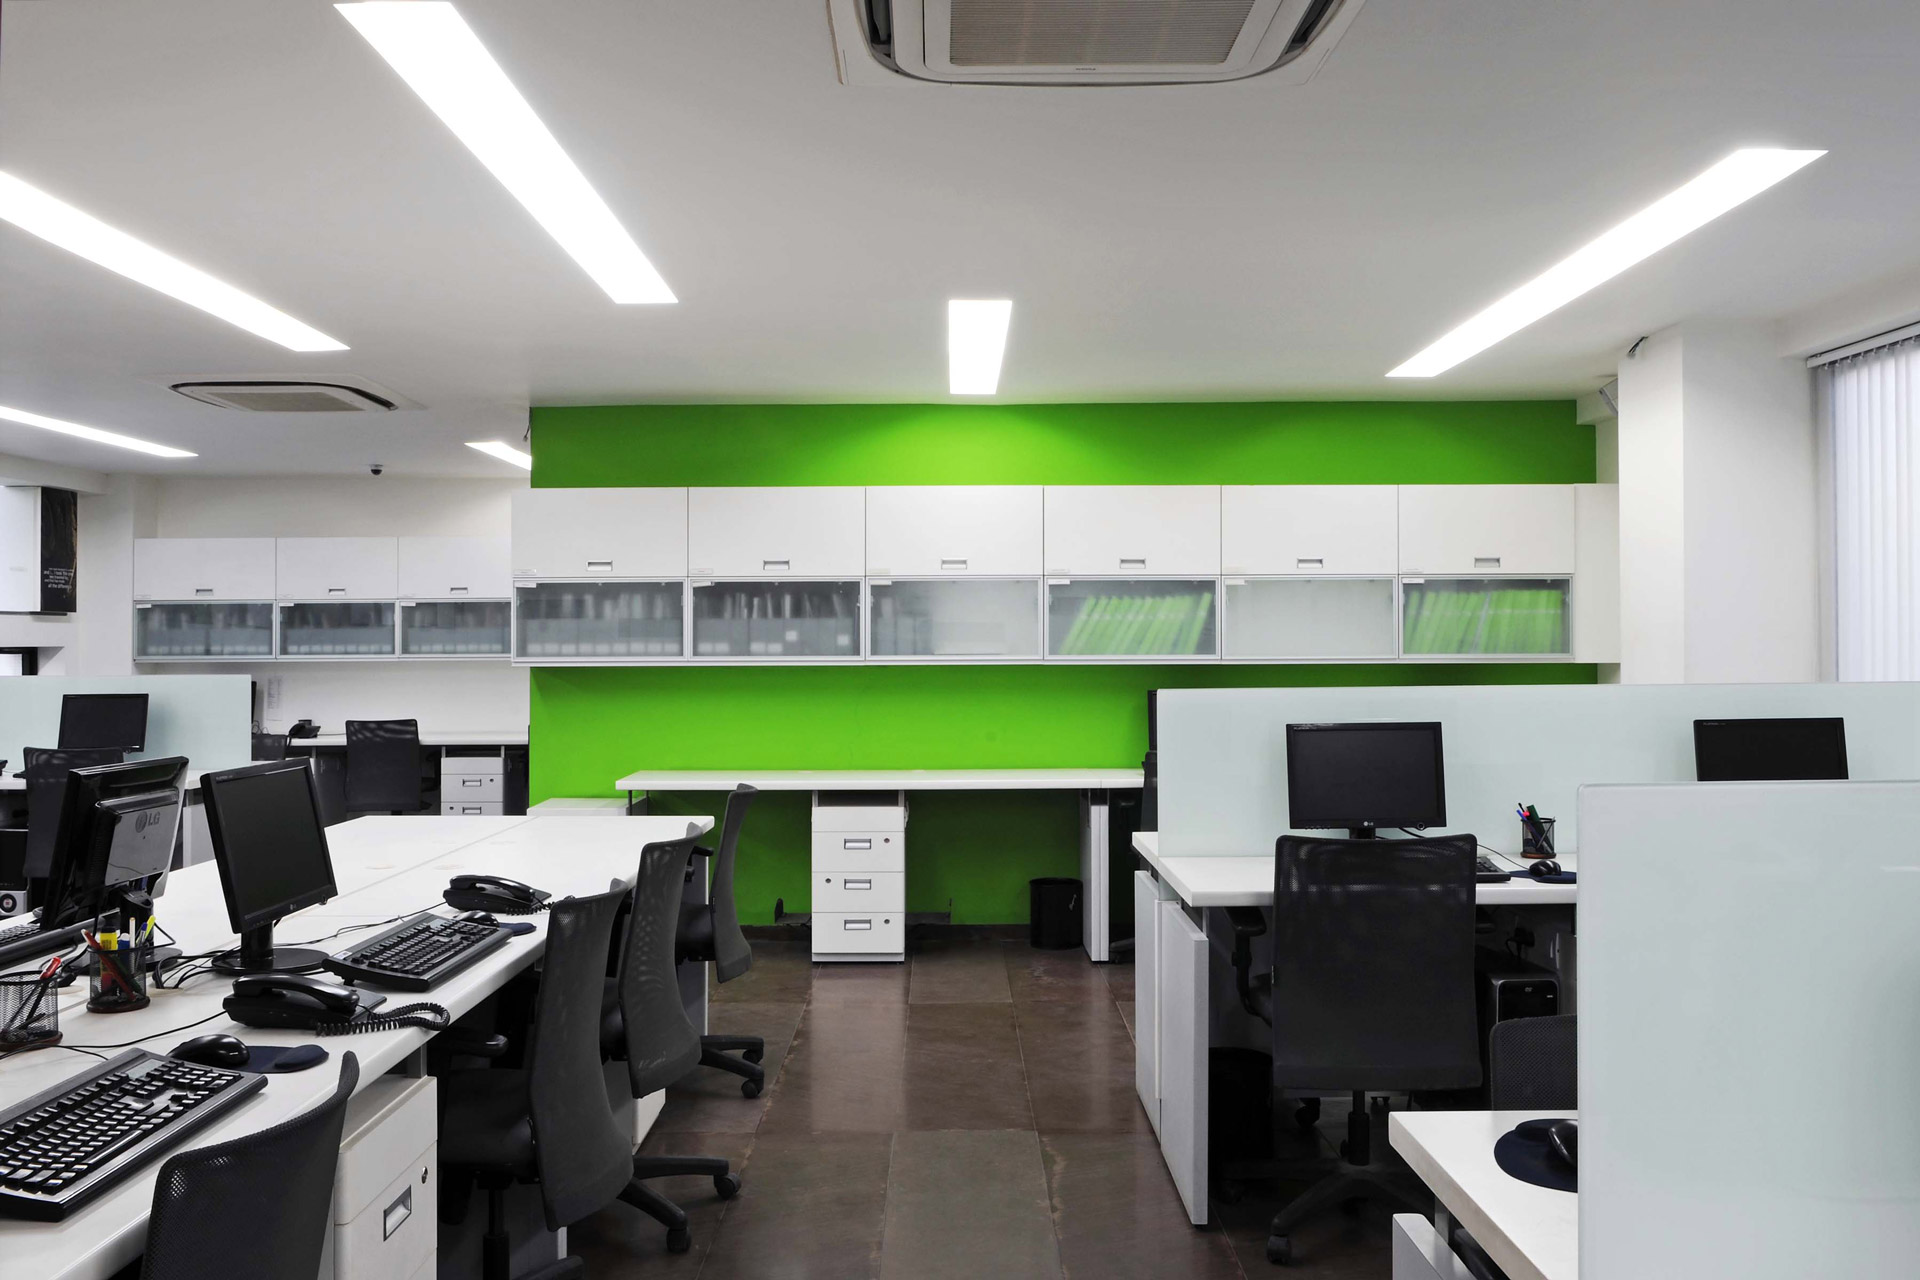 aapl office associated architects i pvt ltd